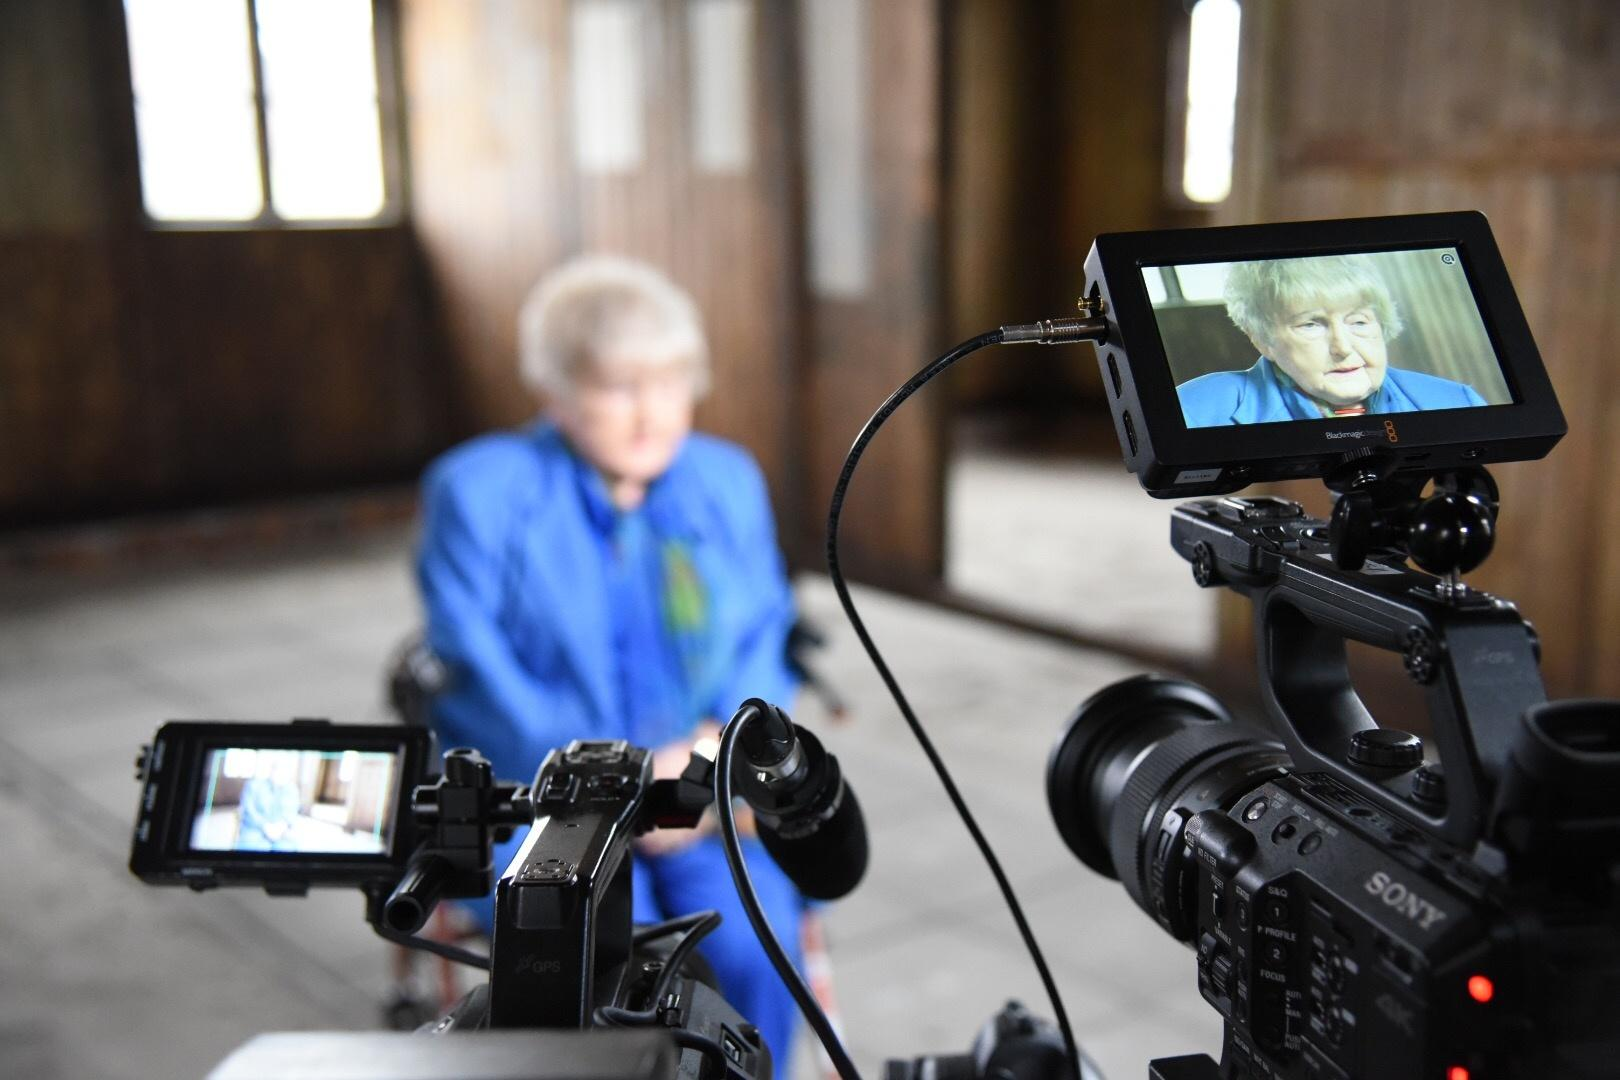 Eva Kor being interviewed at Auschwitz in the 'blood labs.'